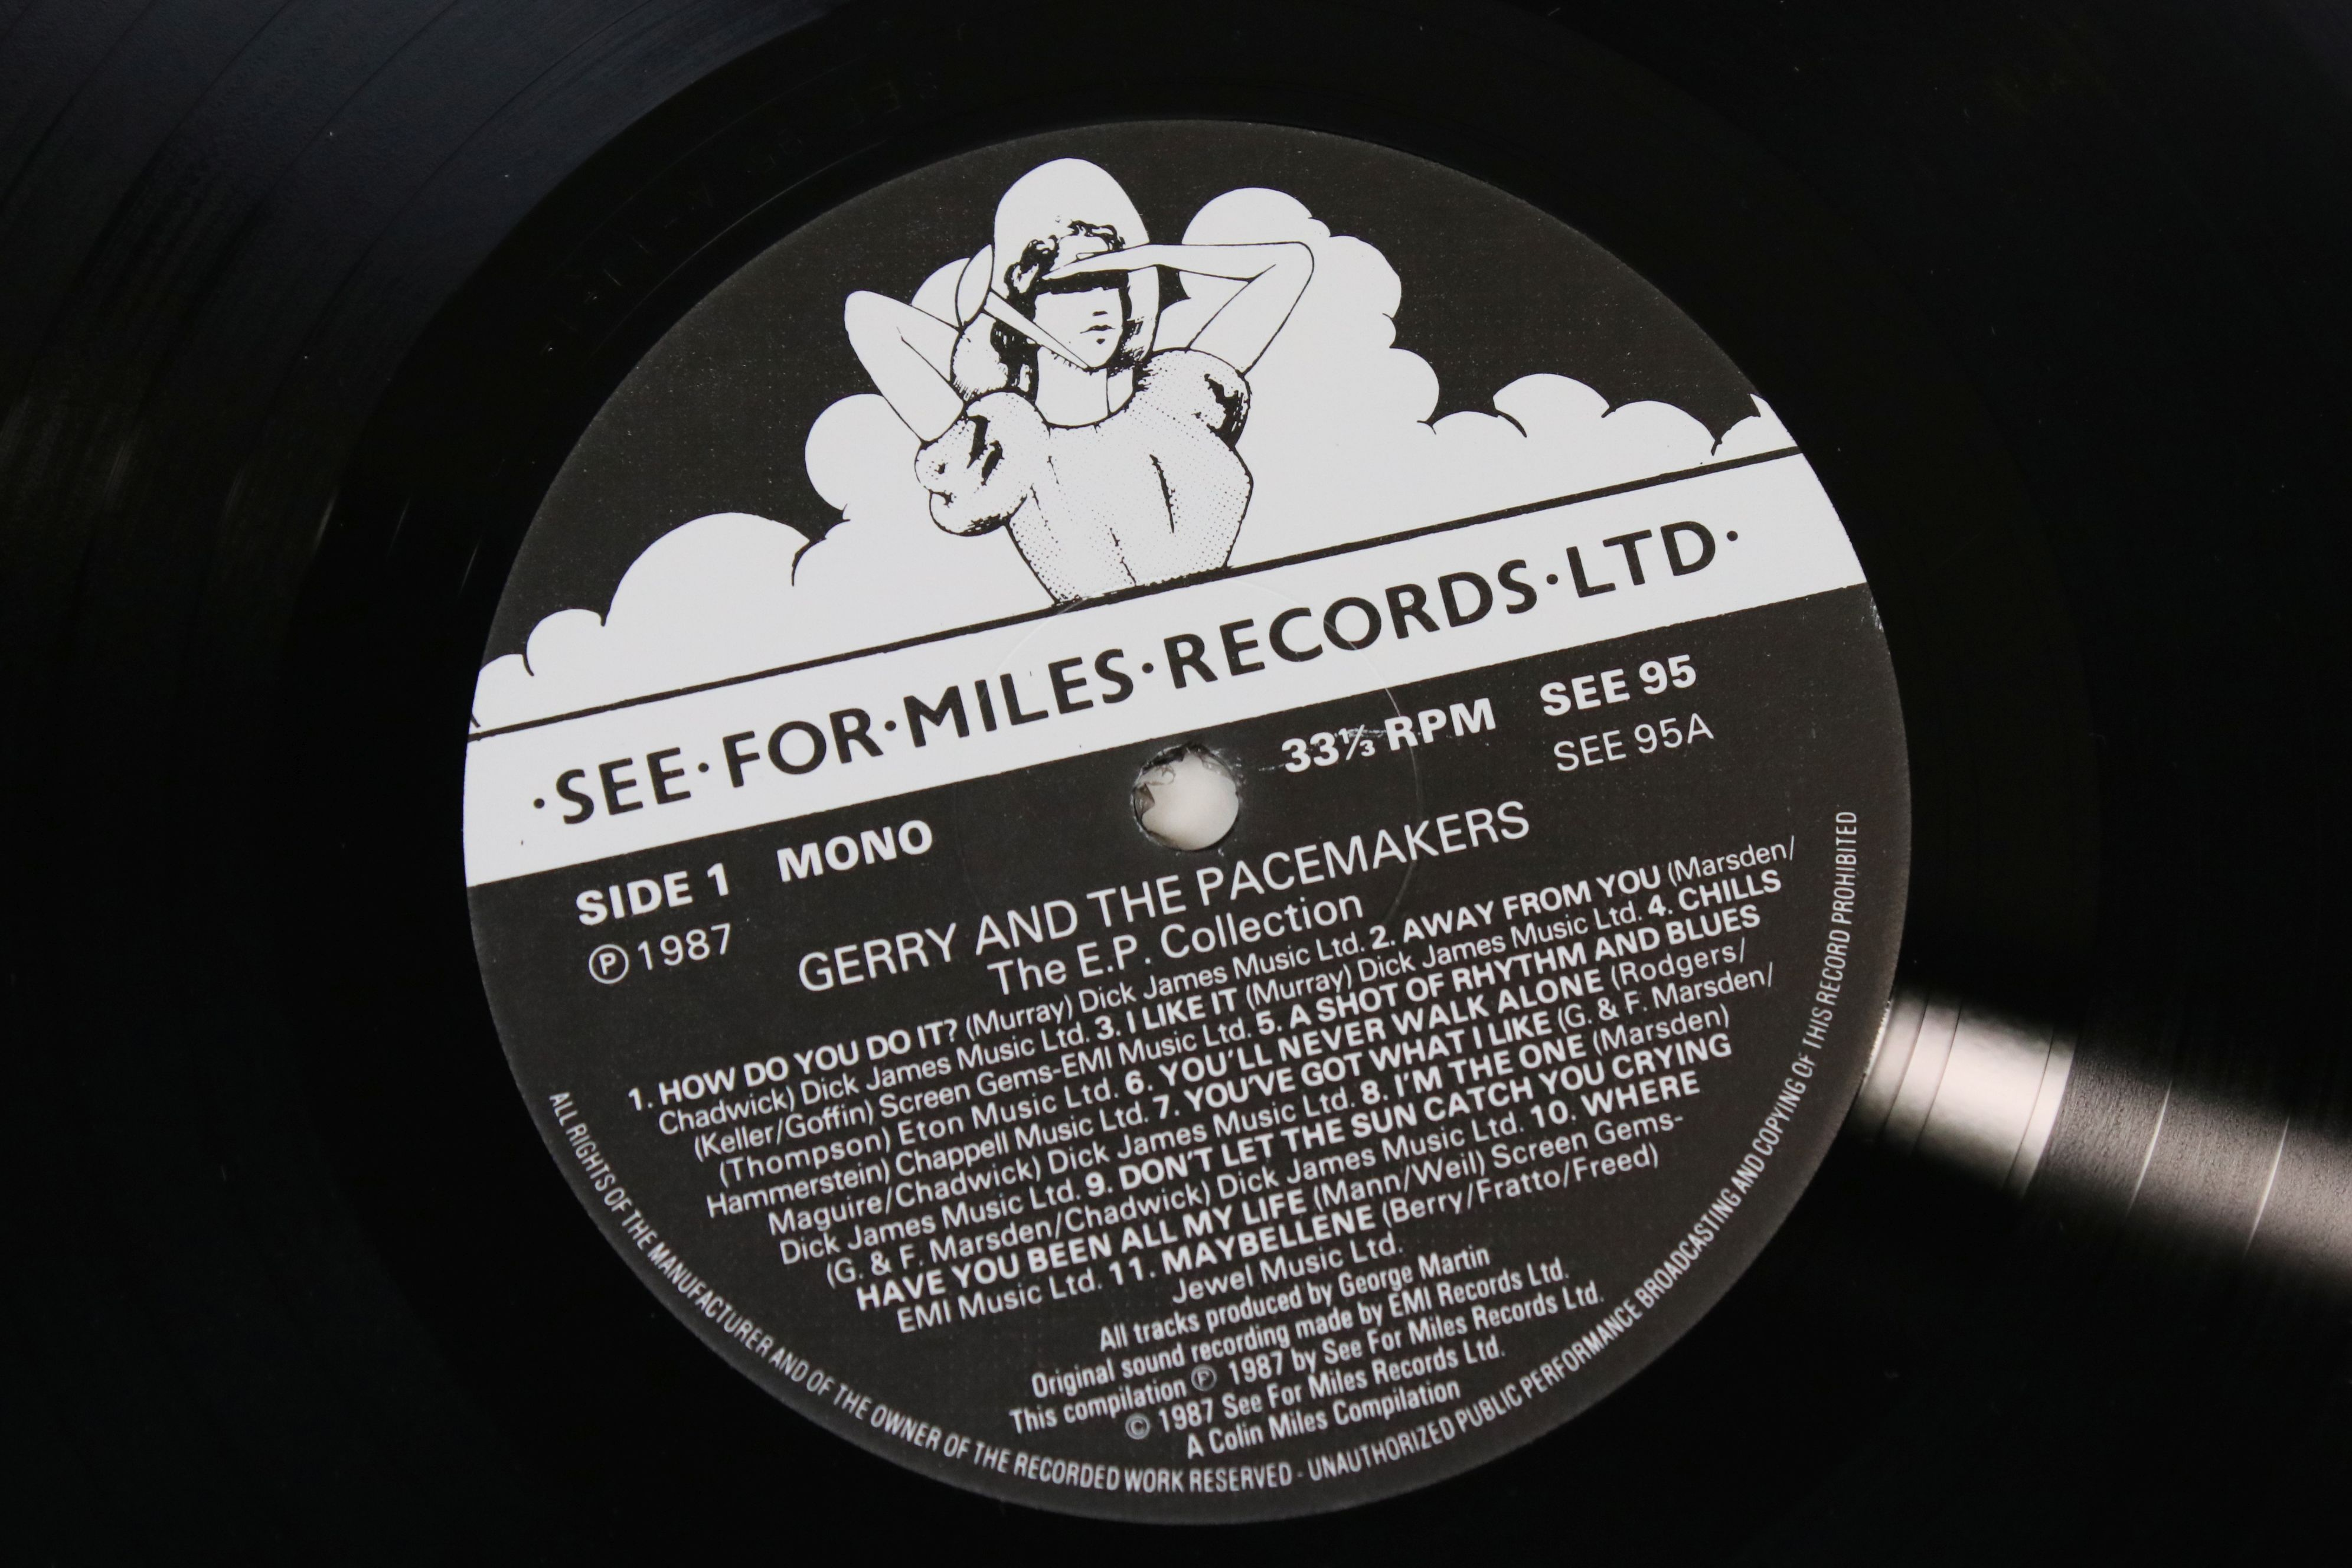 Vinyl - Three LPs on See For Miles Records to include The Hollies EP Collection SEE94, Gerry and the - Image 5 of 5